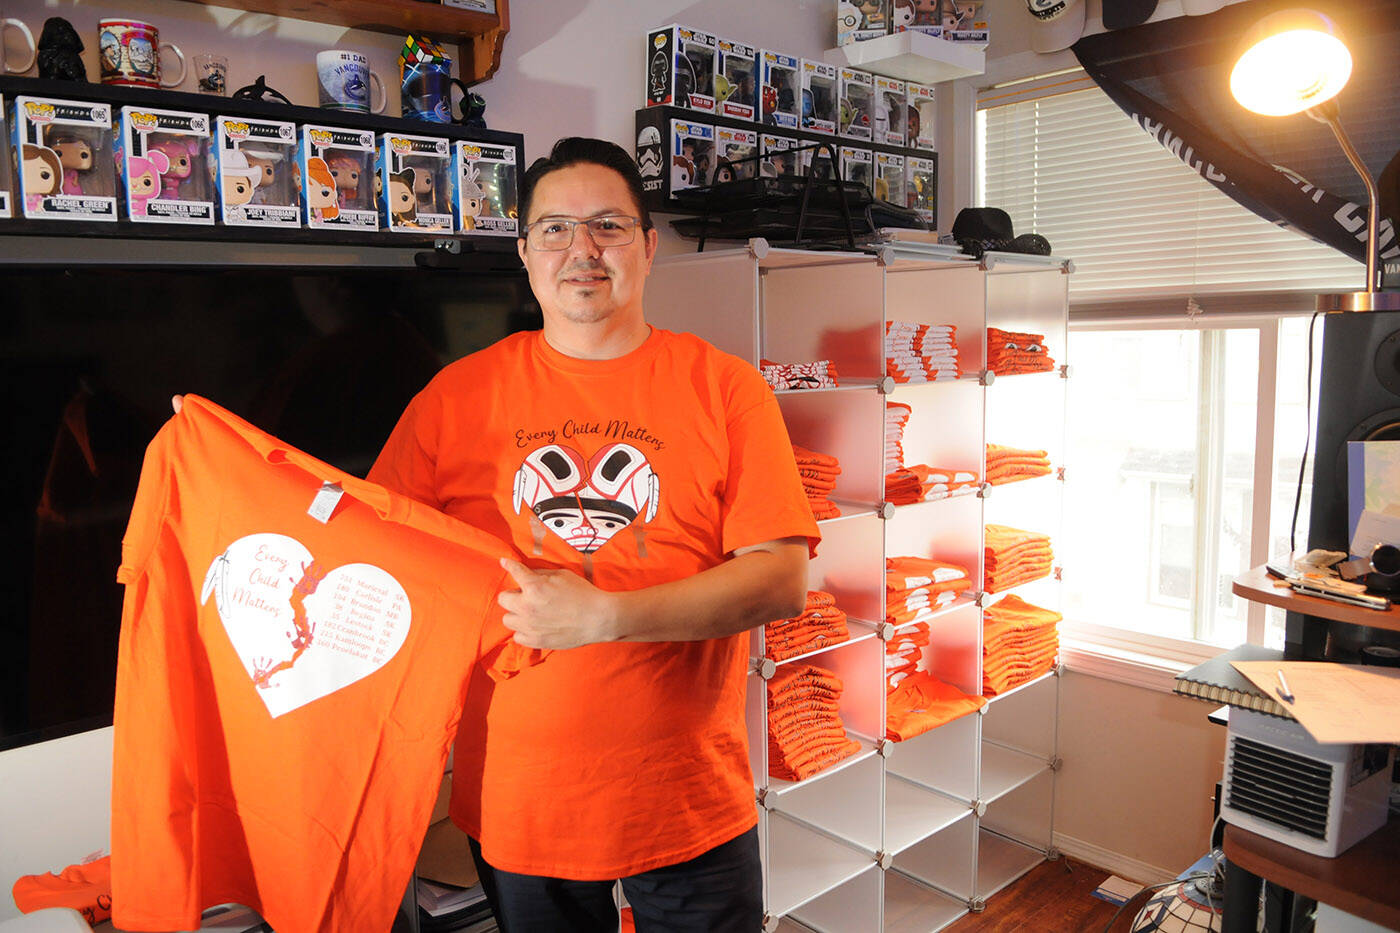 Shawn E. Baginski has been selling orange shirts he designed with all proceeds going to survivors of residential schools. He is pictured here in his Chilliwack home on Sept. 28, 2021. (Jenna Hauck/ Chilliwack Progress)